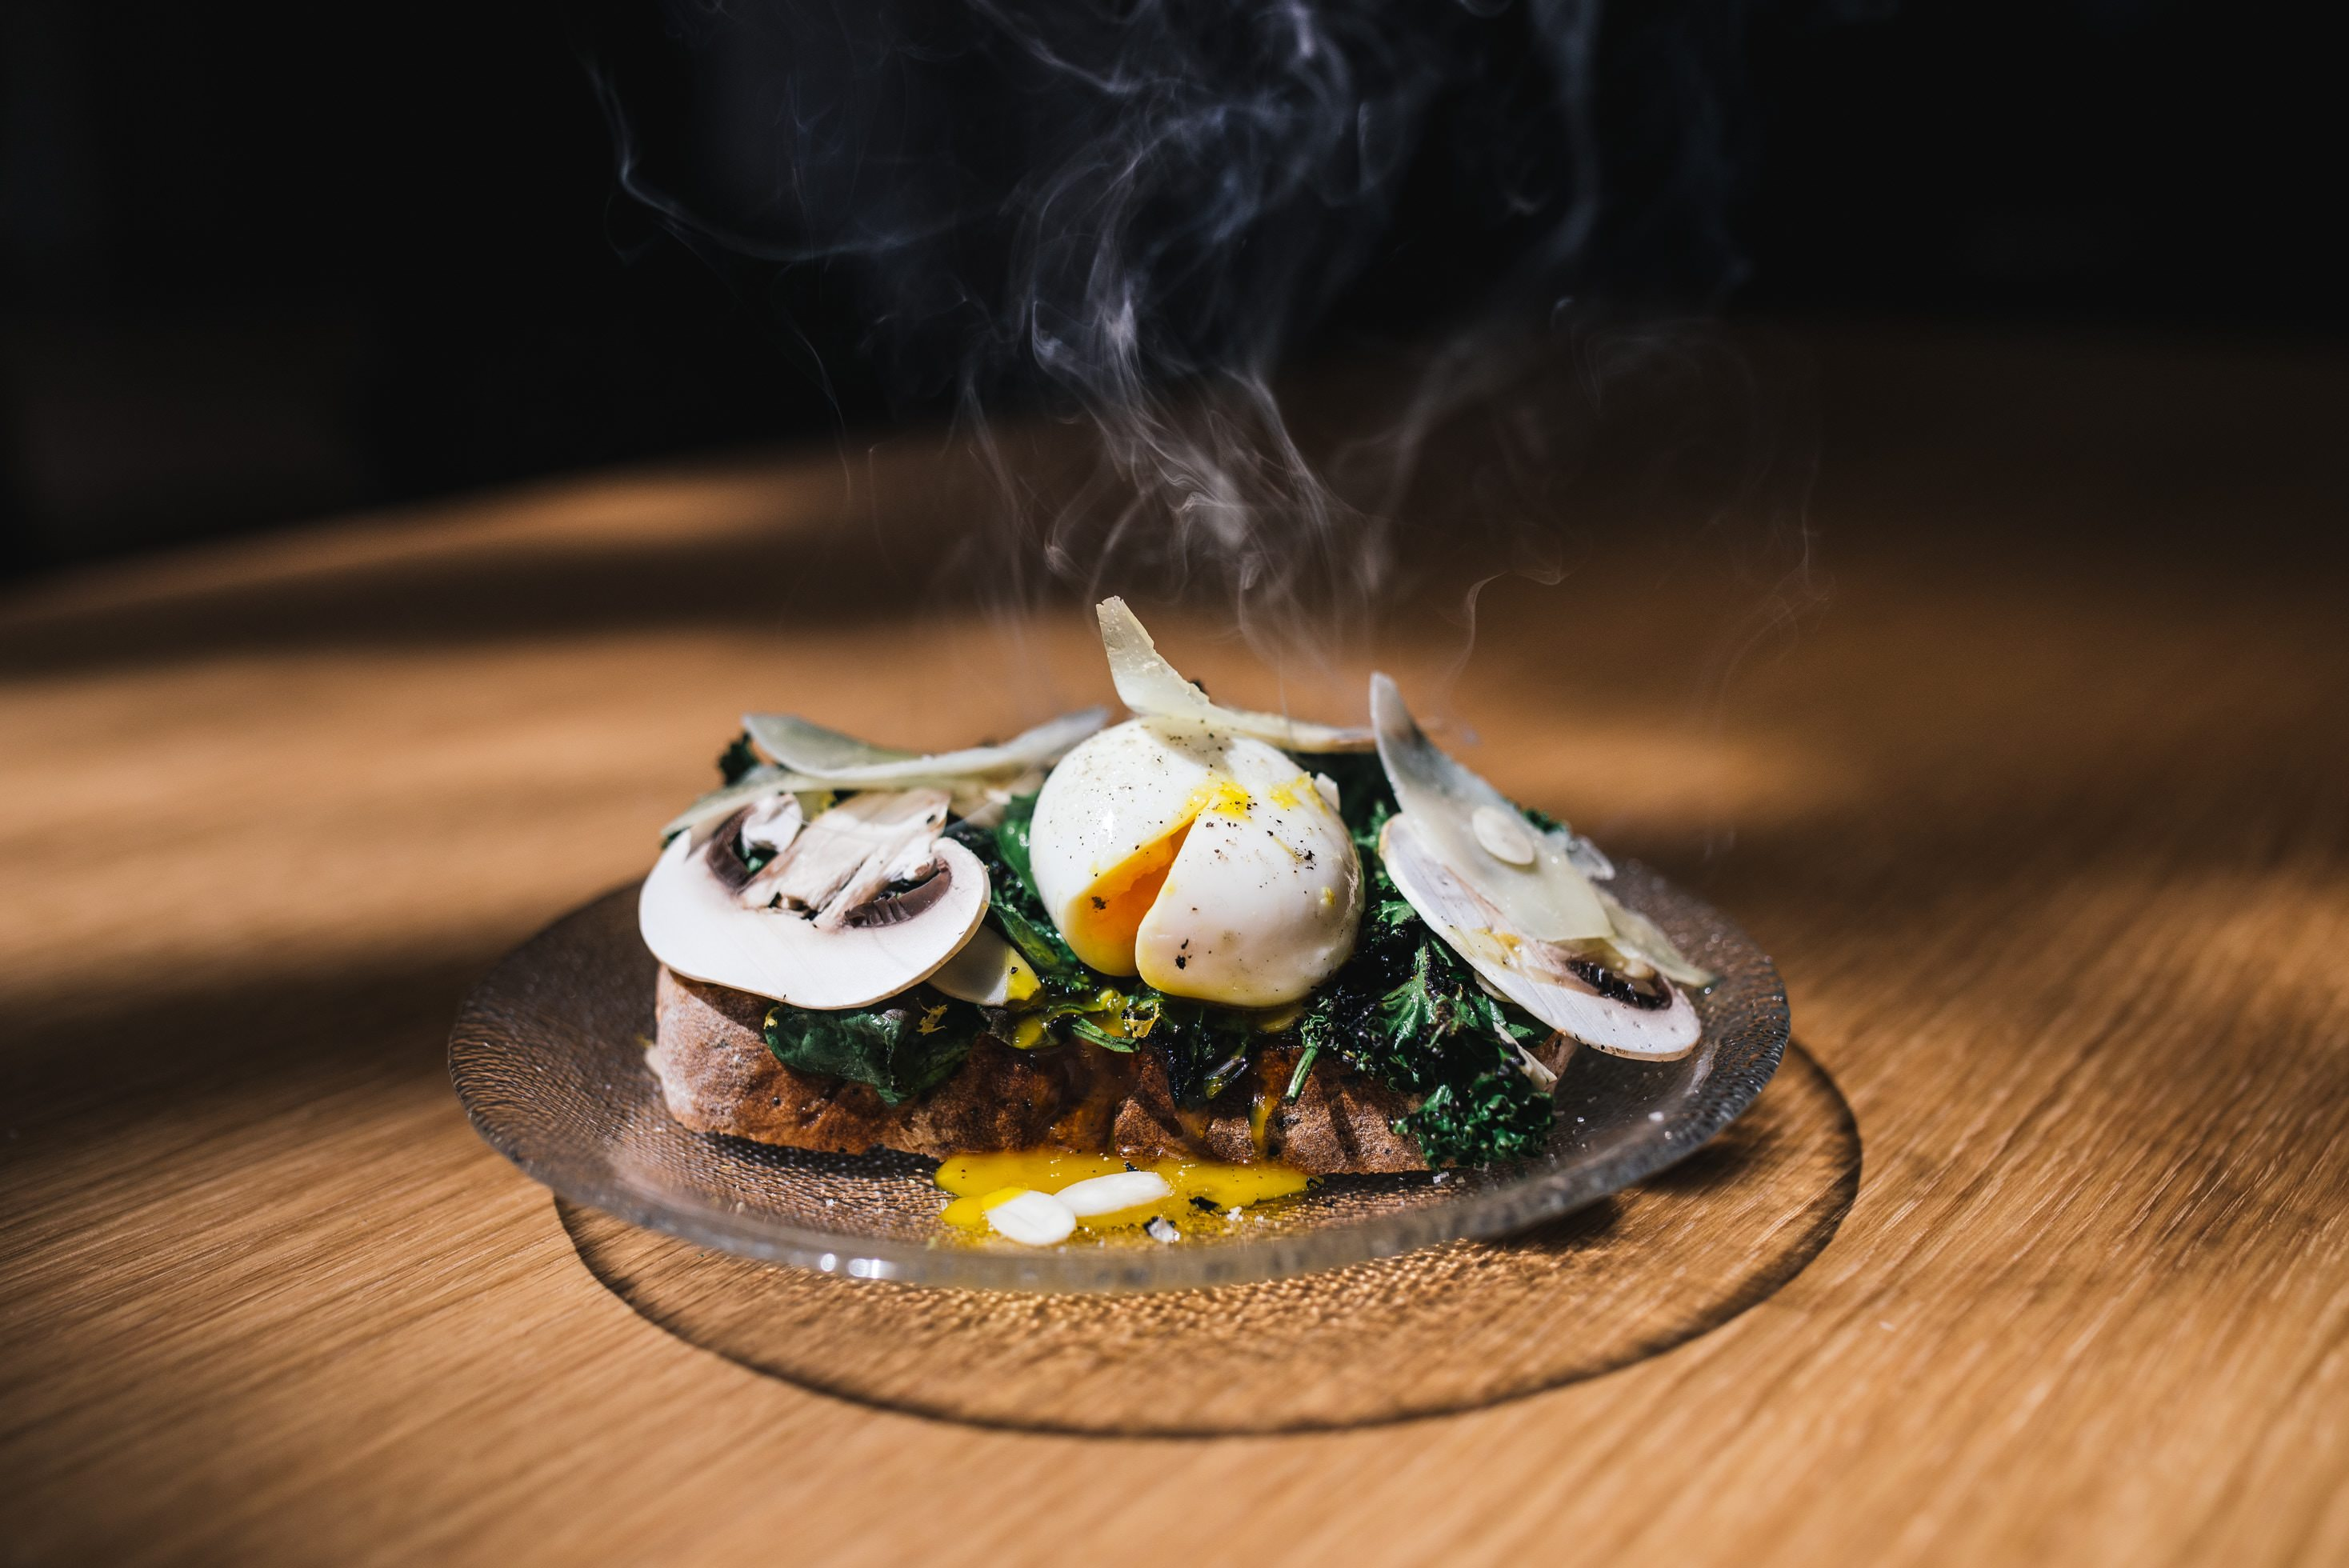 Getting portion sizes right with this Mushroom and Poached Eggs on toast according to May Simpkin